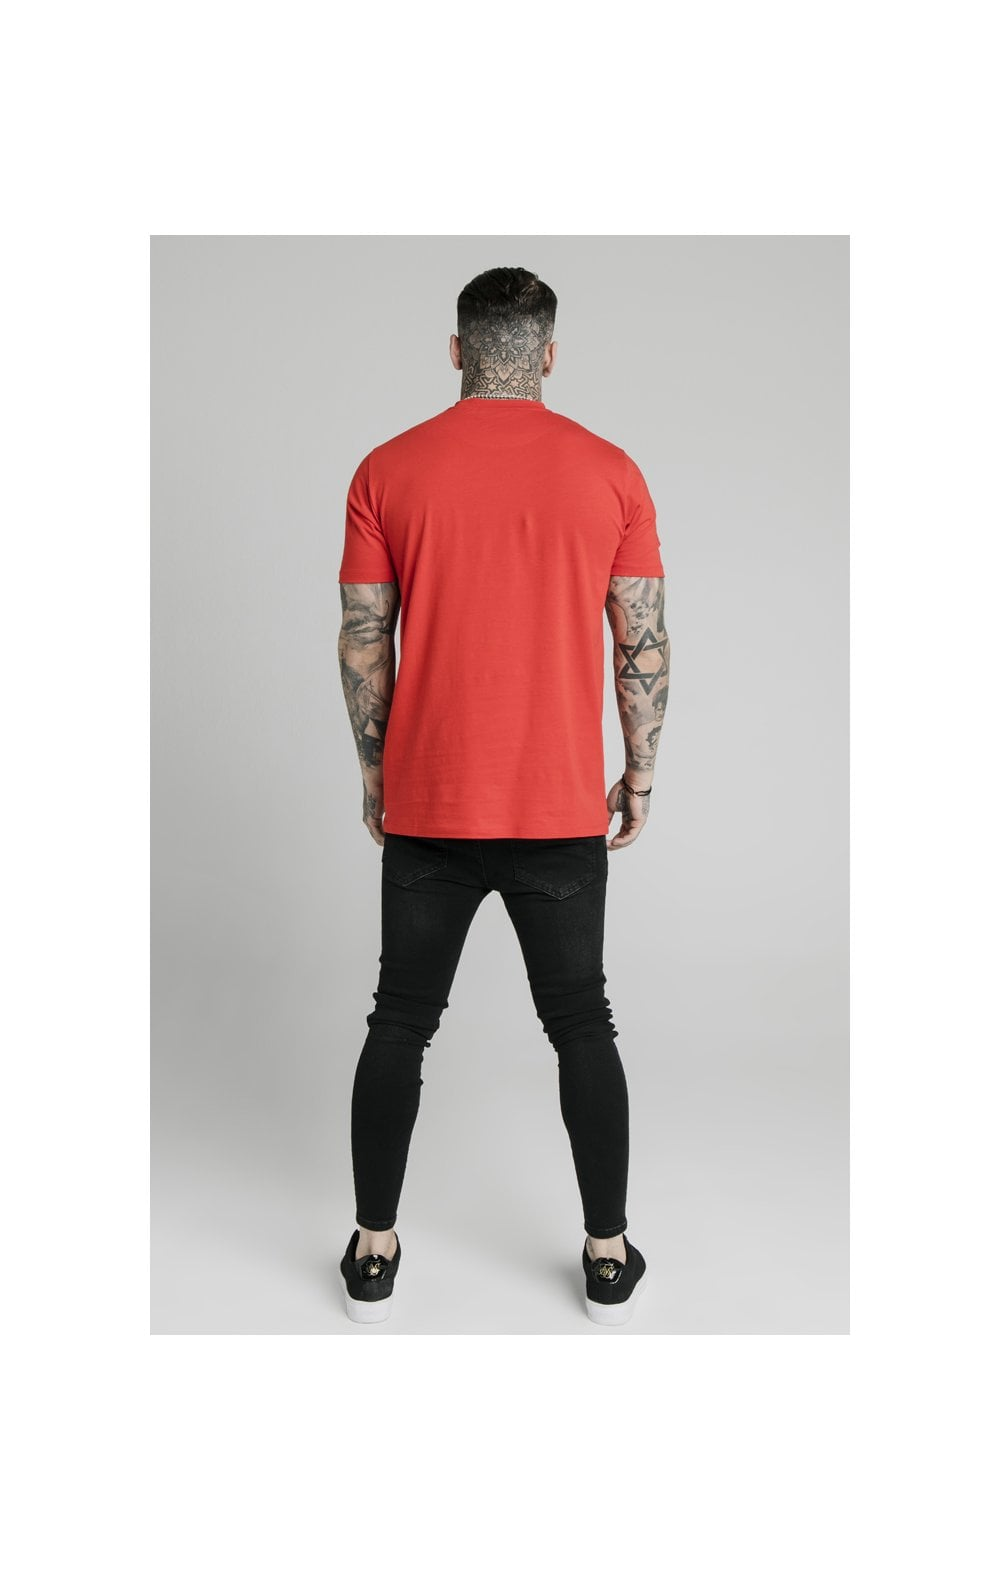 SikSilk S/S Square Hem Tee – Red (4)